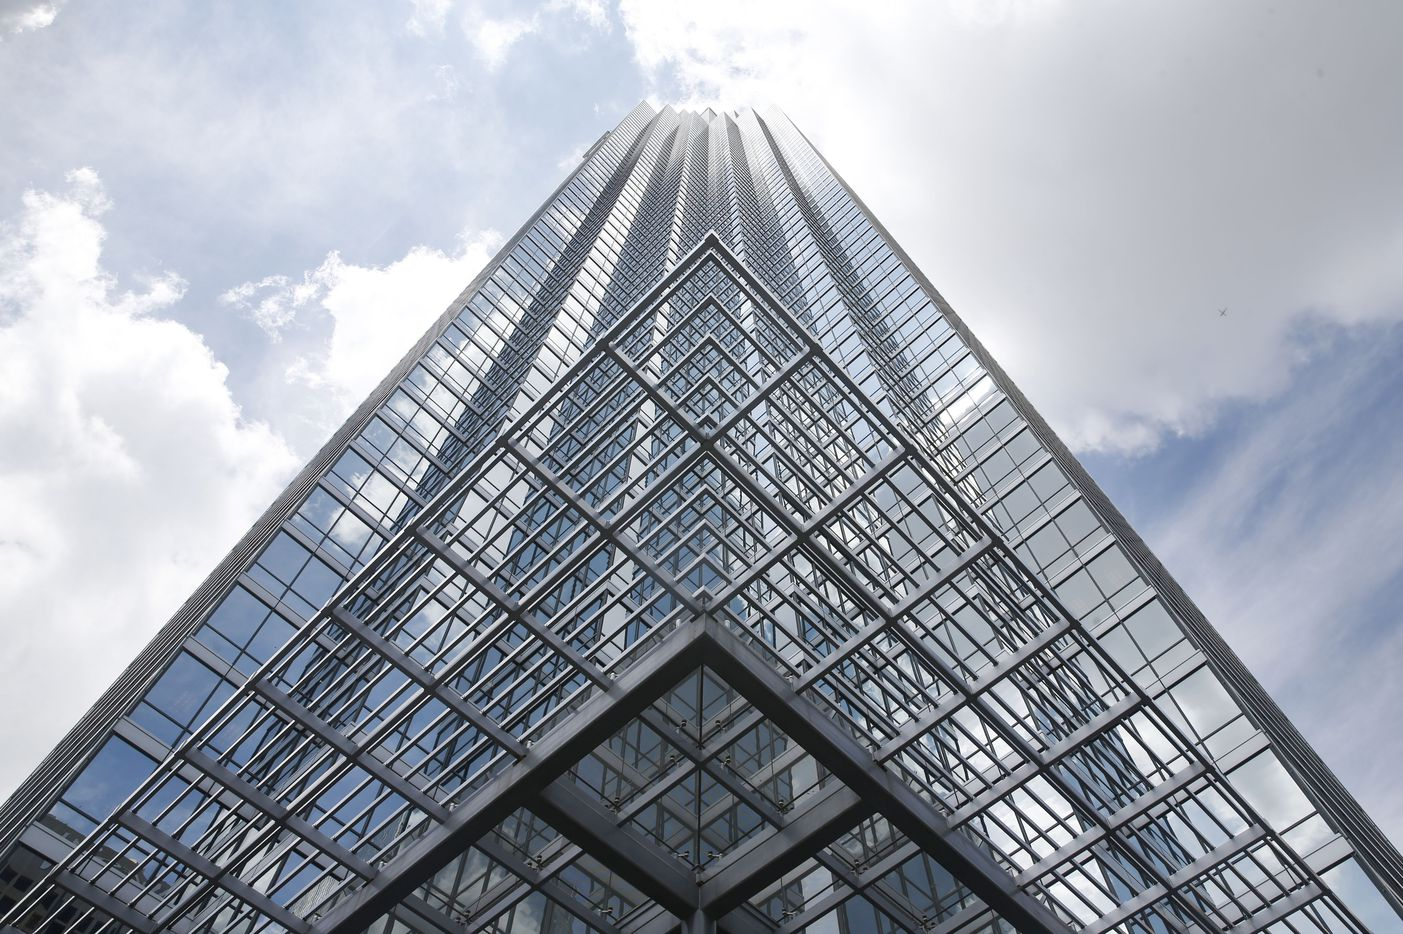 The Bank of America Plaza is seen Monday afternoon, April 8, 2019 in Dallas. Cushman & Wakefield is marketing the landmark 72-story skyscraper for sale. It is Dallas' tallest building, and the second-tallest in Texas.